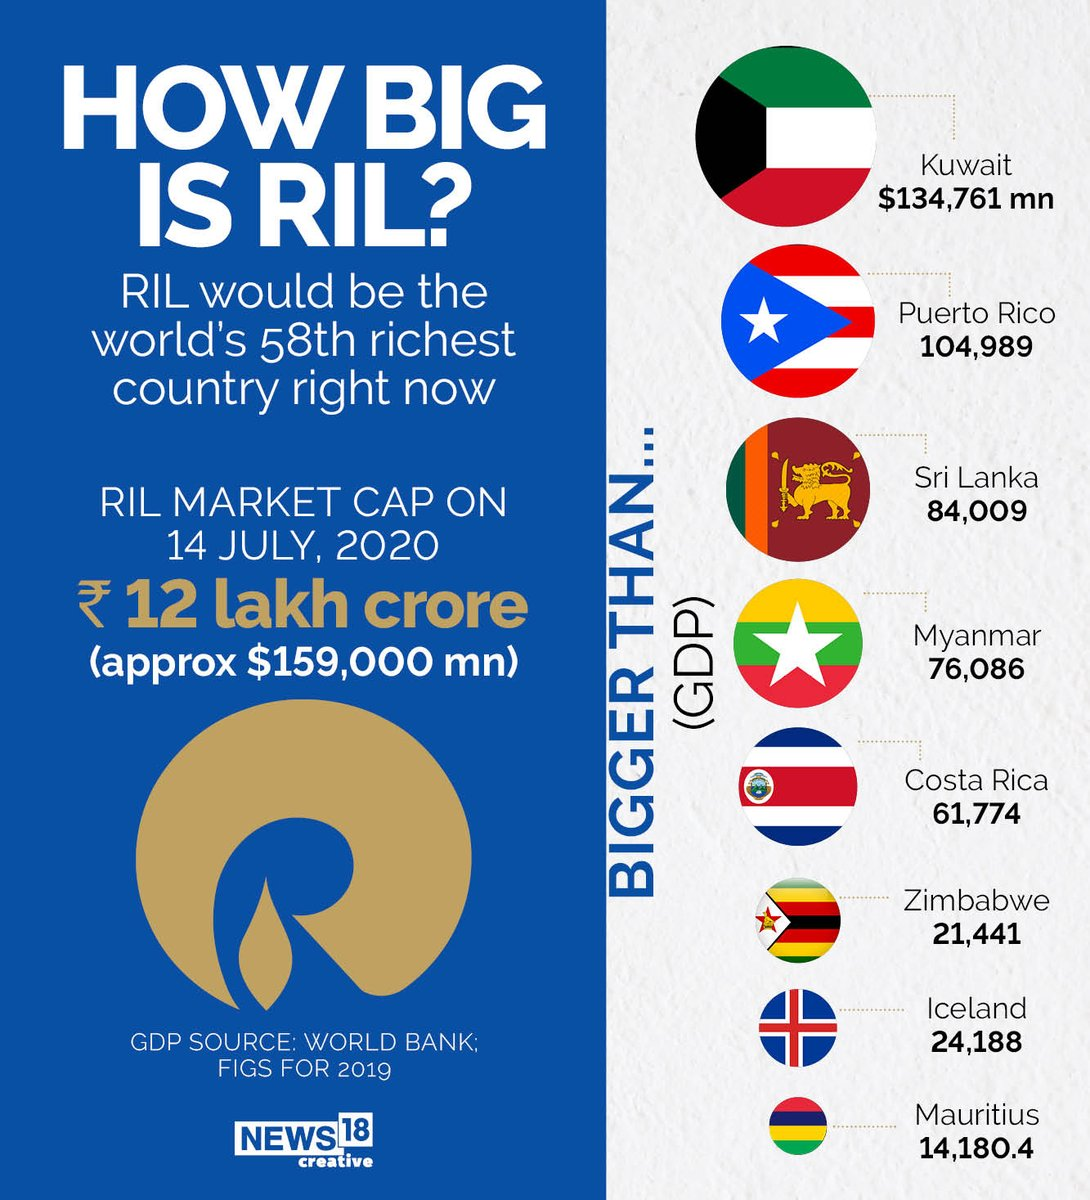 #DidYouKnow how big is #RelianceIndustries? Well, take a look 🧐  Before #RIL Chairman #MukeshAmbani begins his address at #RILAGM today, here's a look at Reliance's market cap (via @News18Graphics)  LIVE Updates of RIL AGM: https://t.co/ogIXPE7aiV https://t.co/GSeh1wfsIY